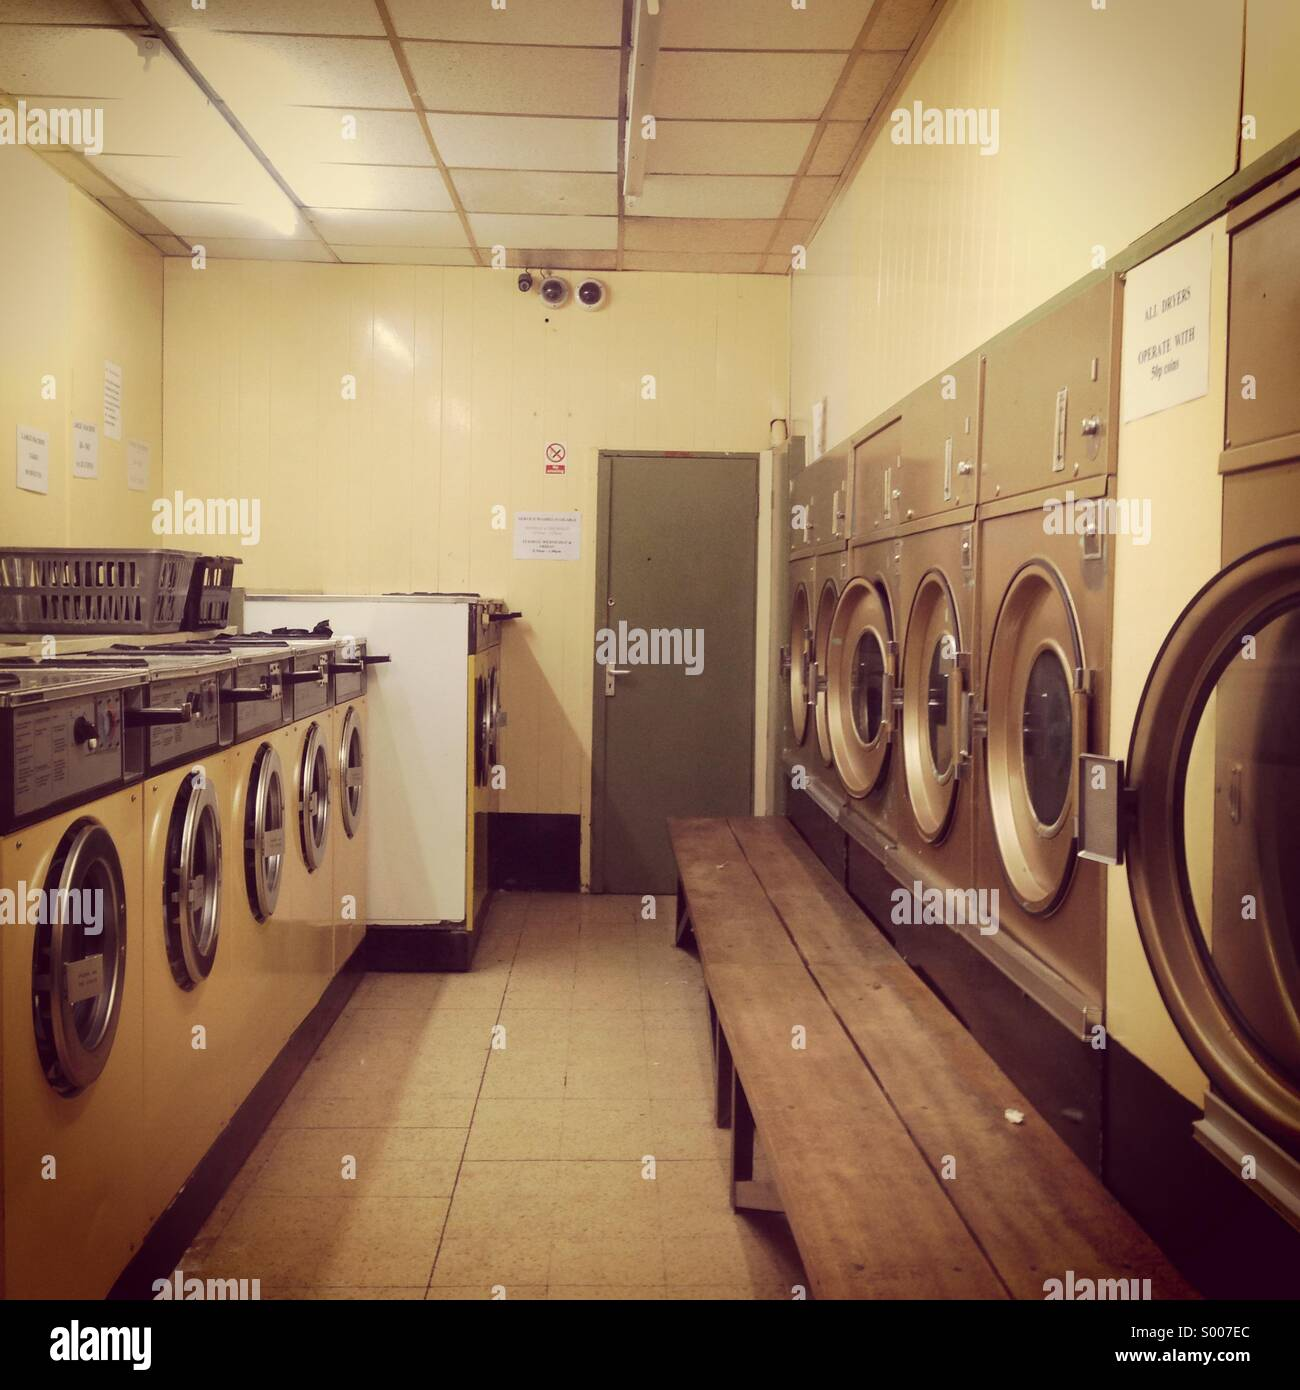 Laundrette shop with washing machines and dryers. - Stock Image